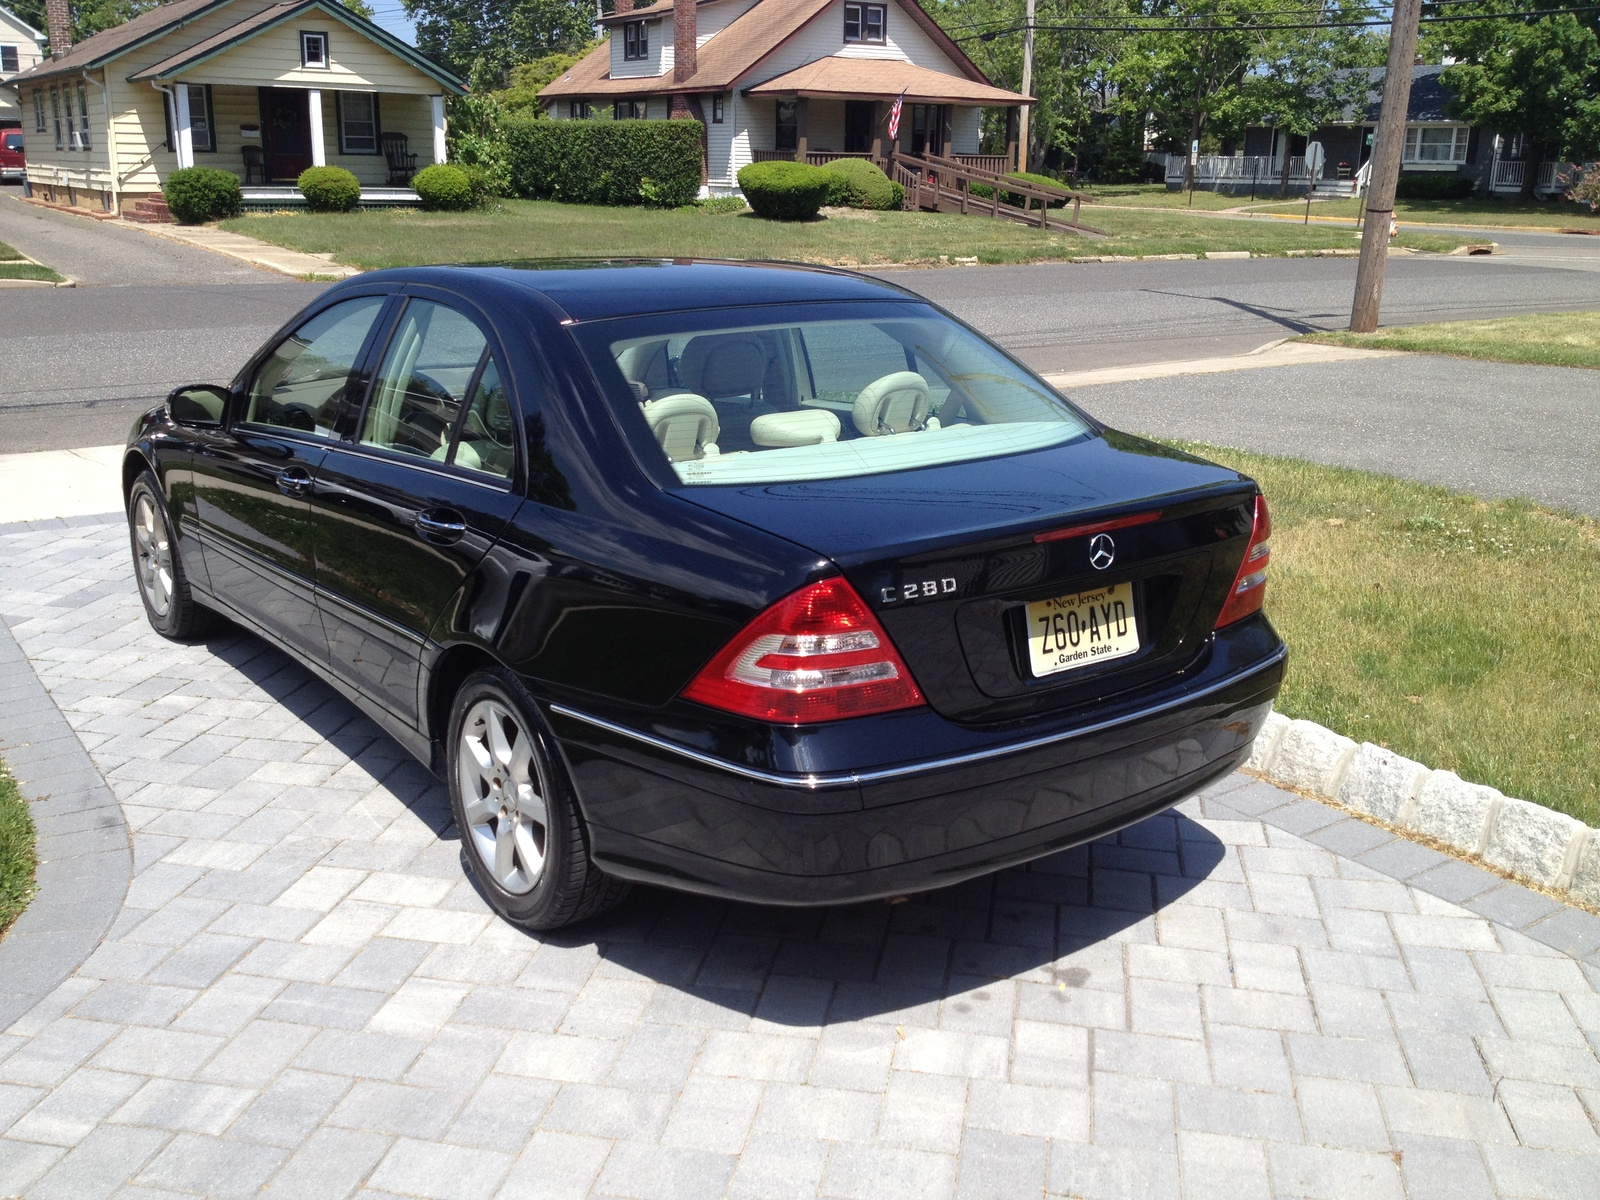 Picture of 2007 mercedes benz c class c280 luxury exterior for 2007 mercedes benz c350